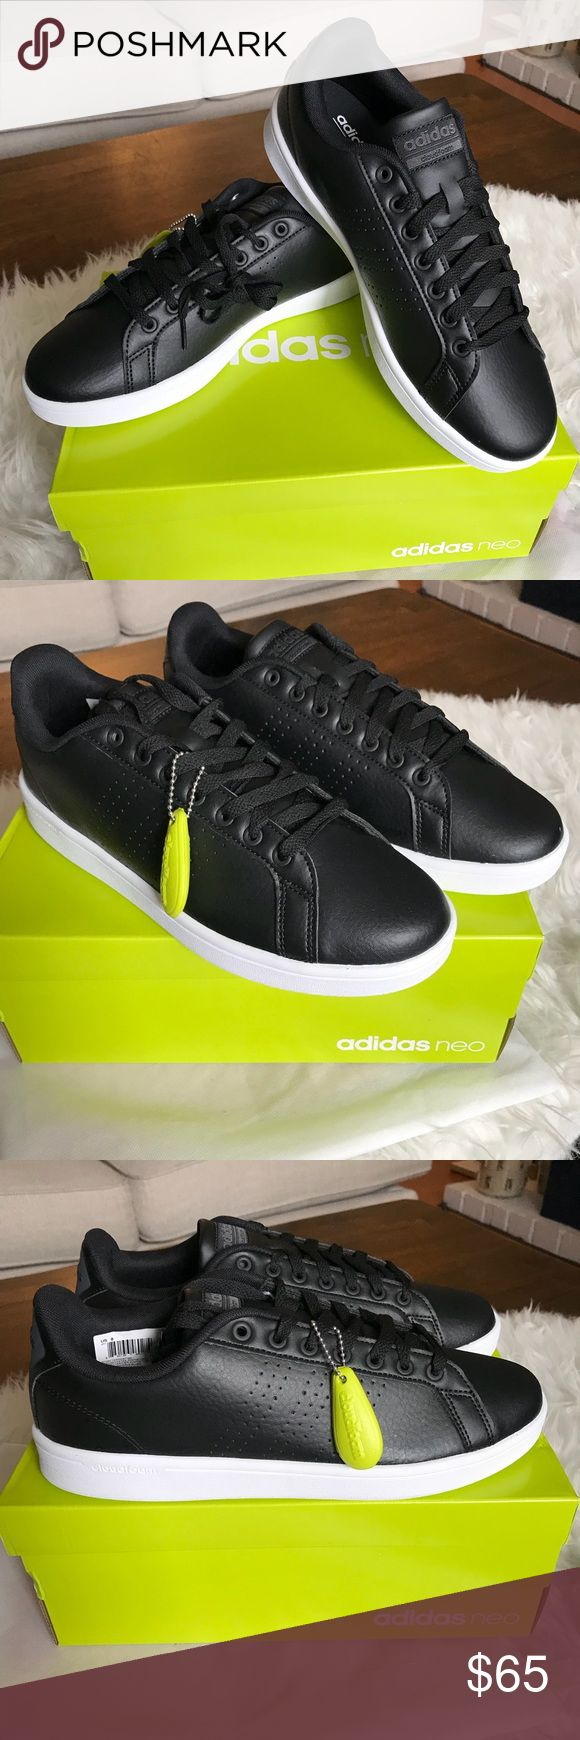 adidas neo cloudfoam footbed